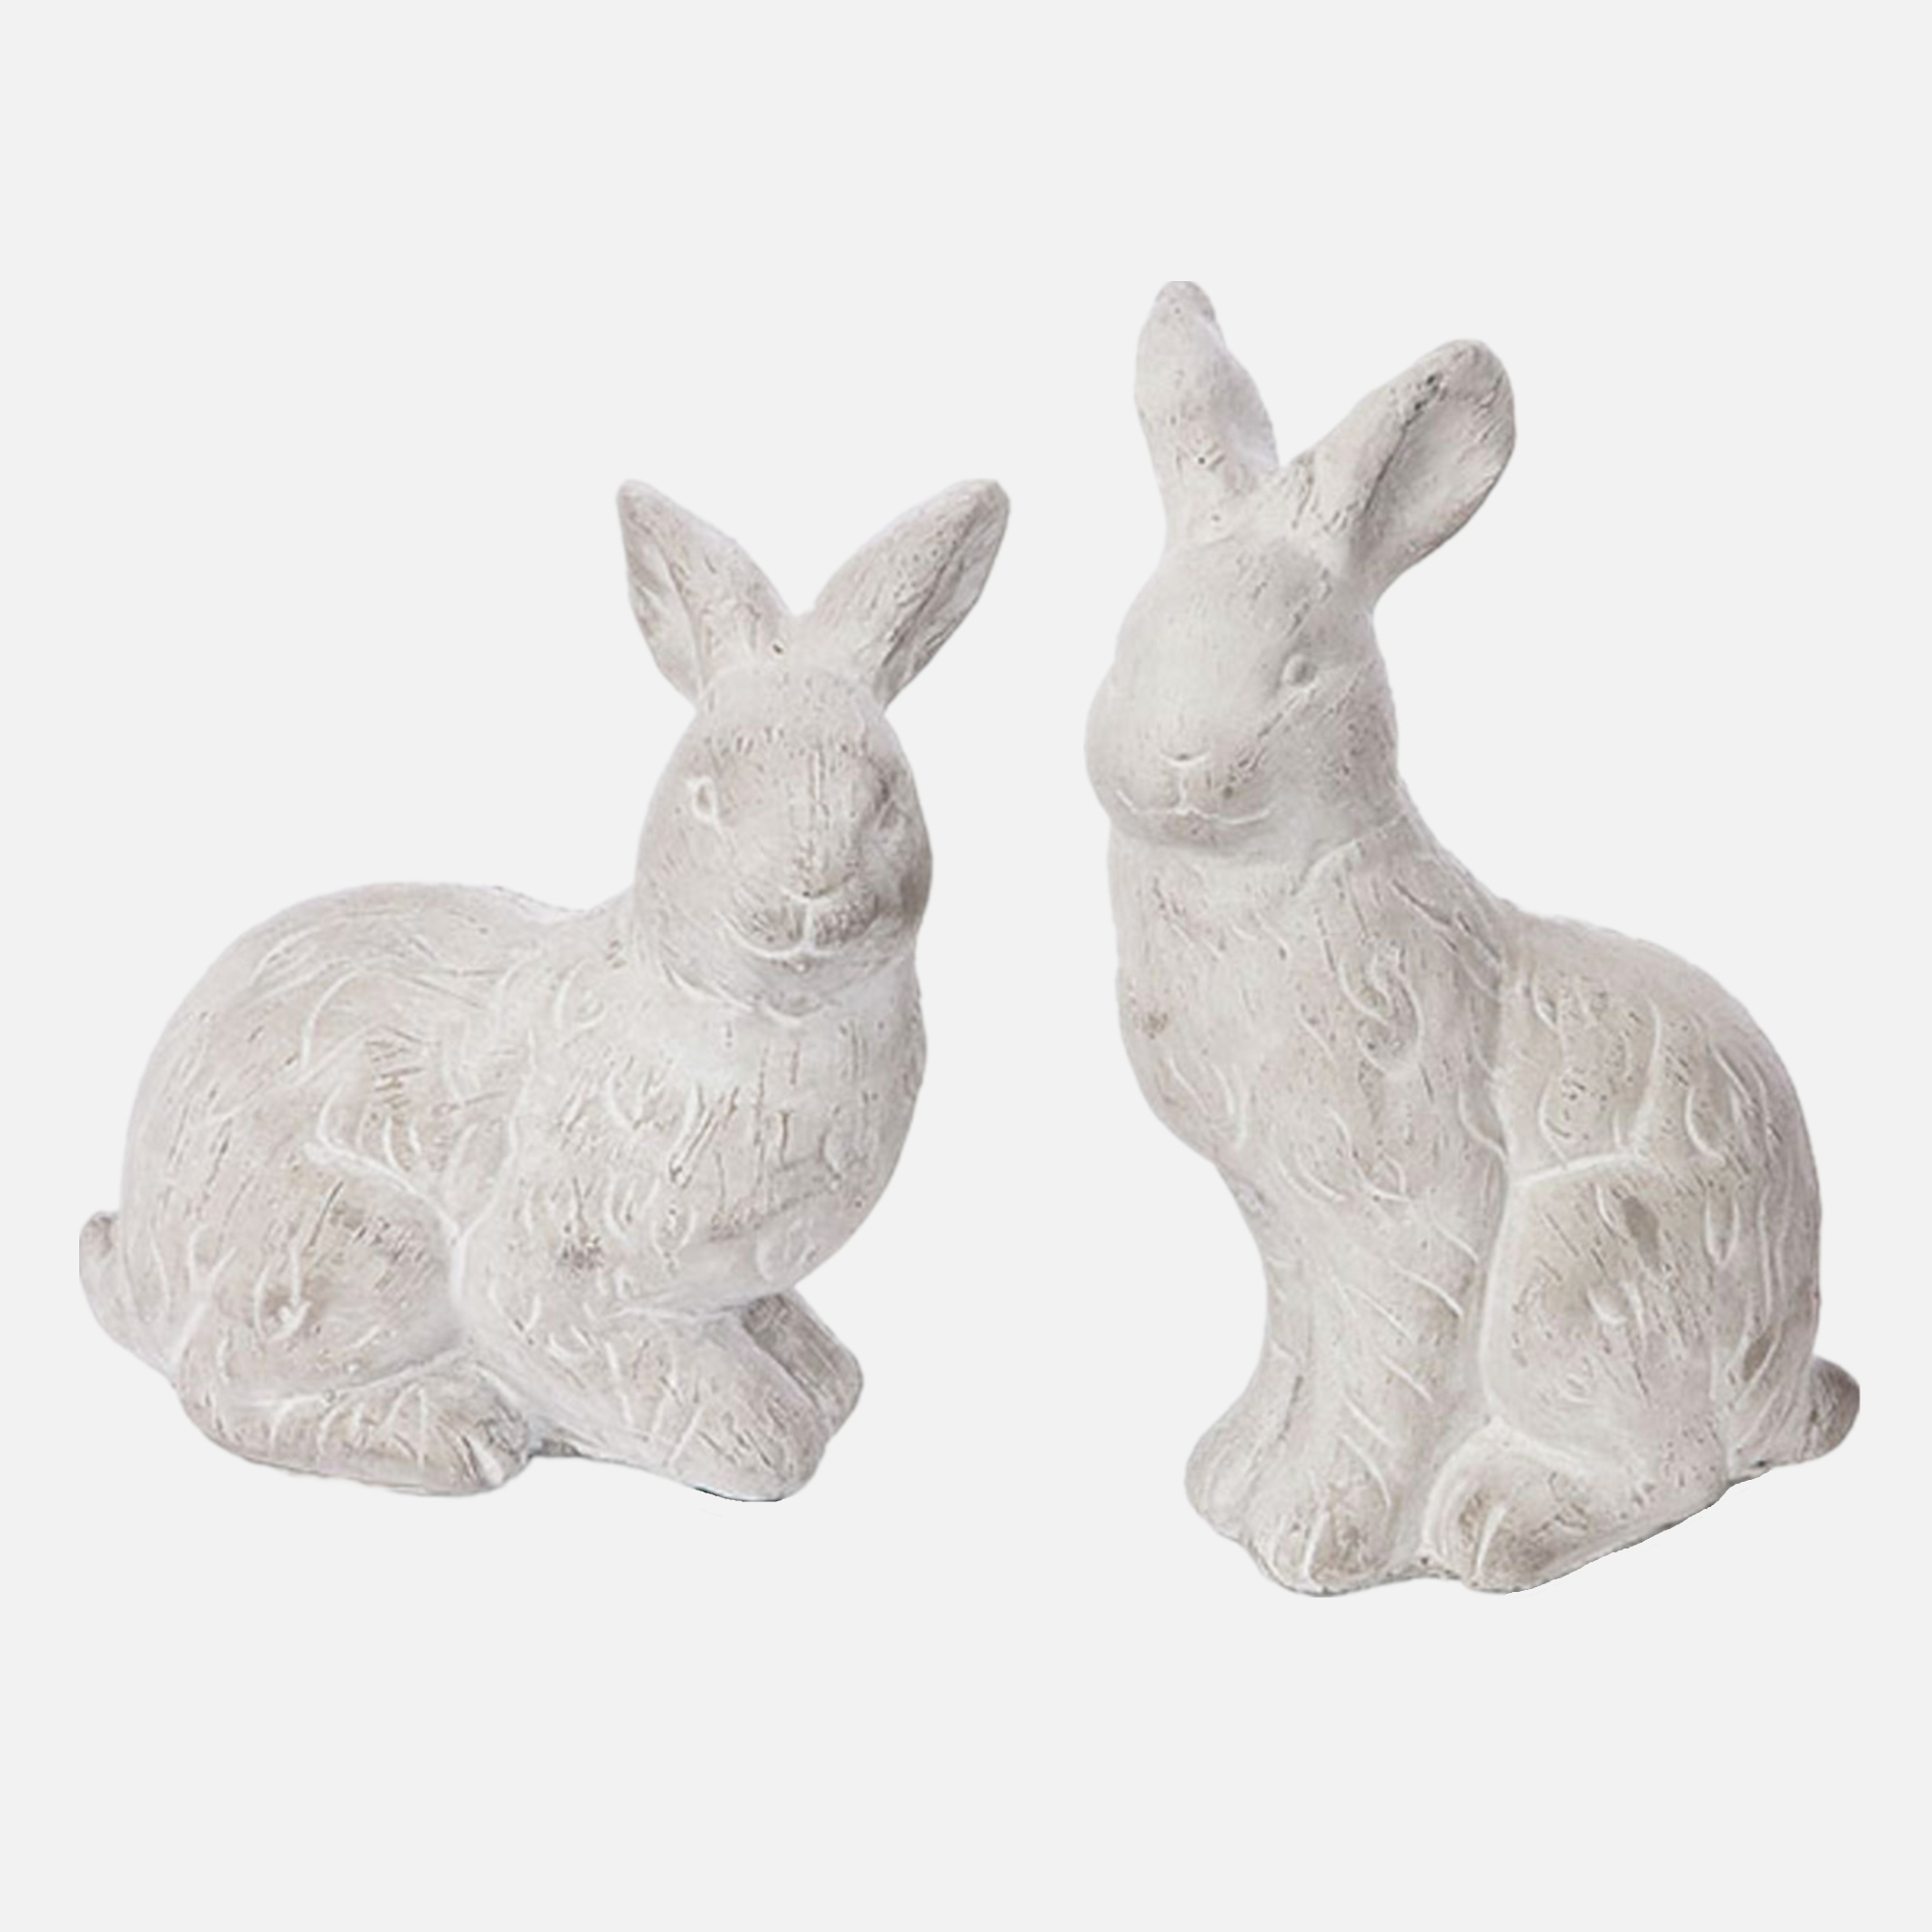 5.5 Inch Tabletop Decoration Resin Floppy Eared Rabbit Statue With Fork Polyresin Bunny Figurine with Bow